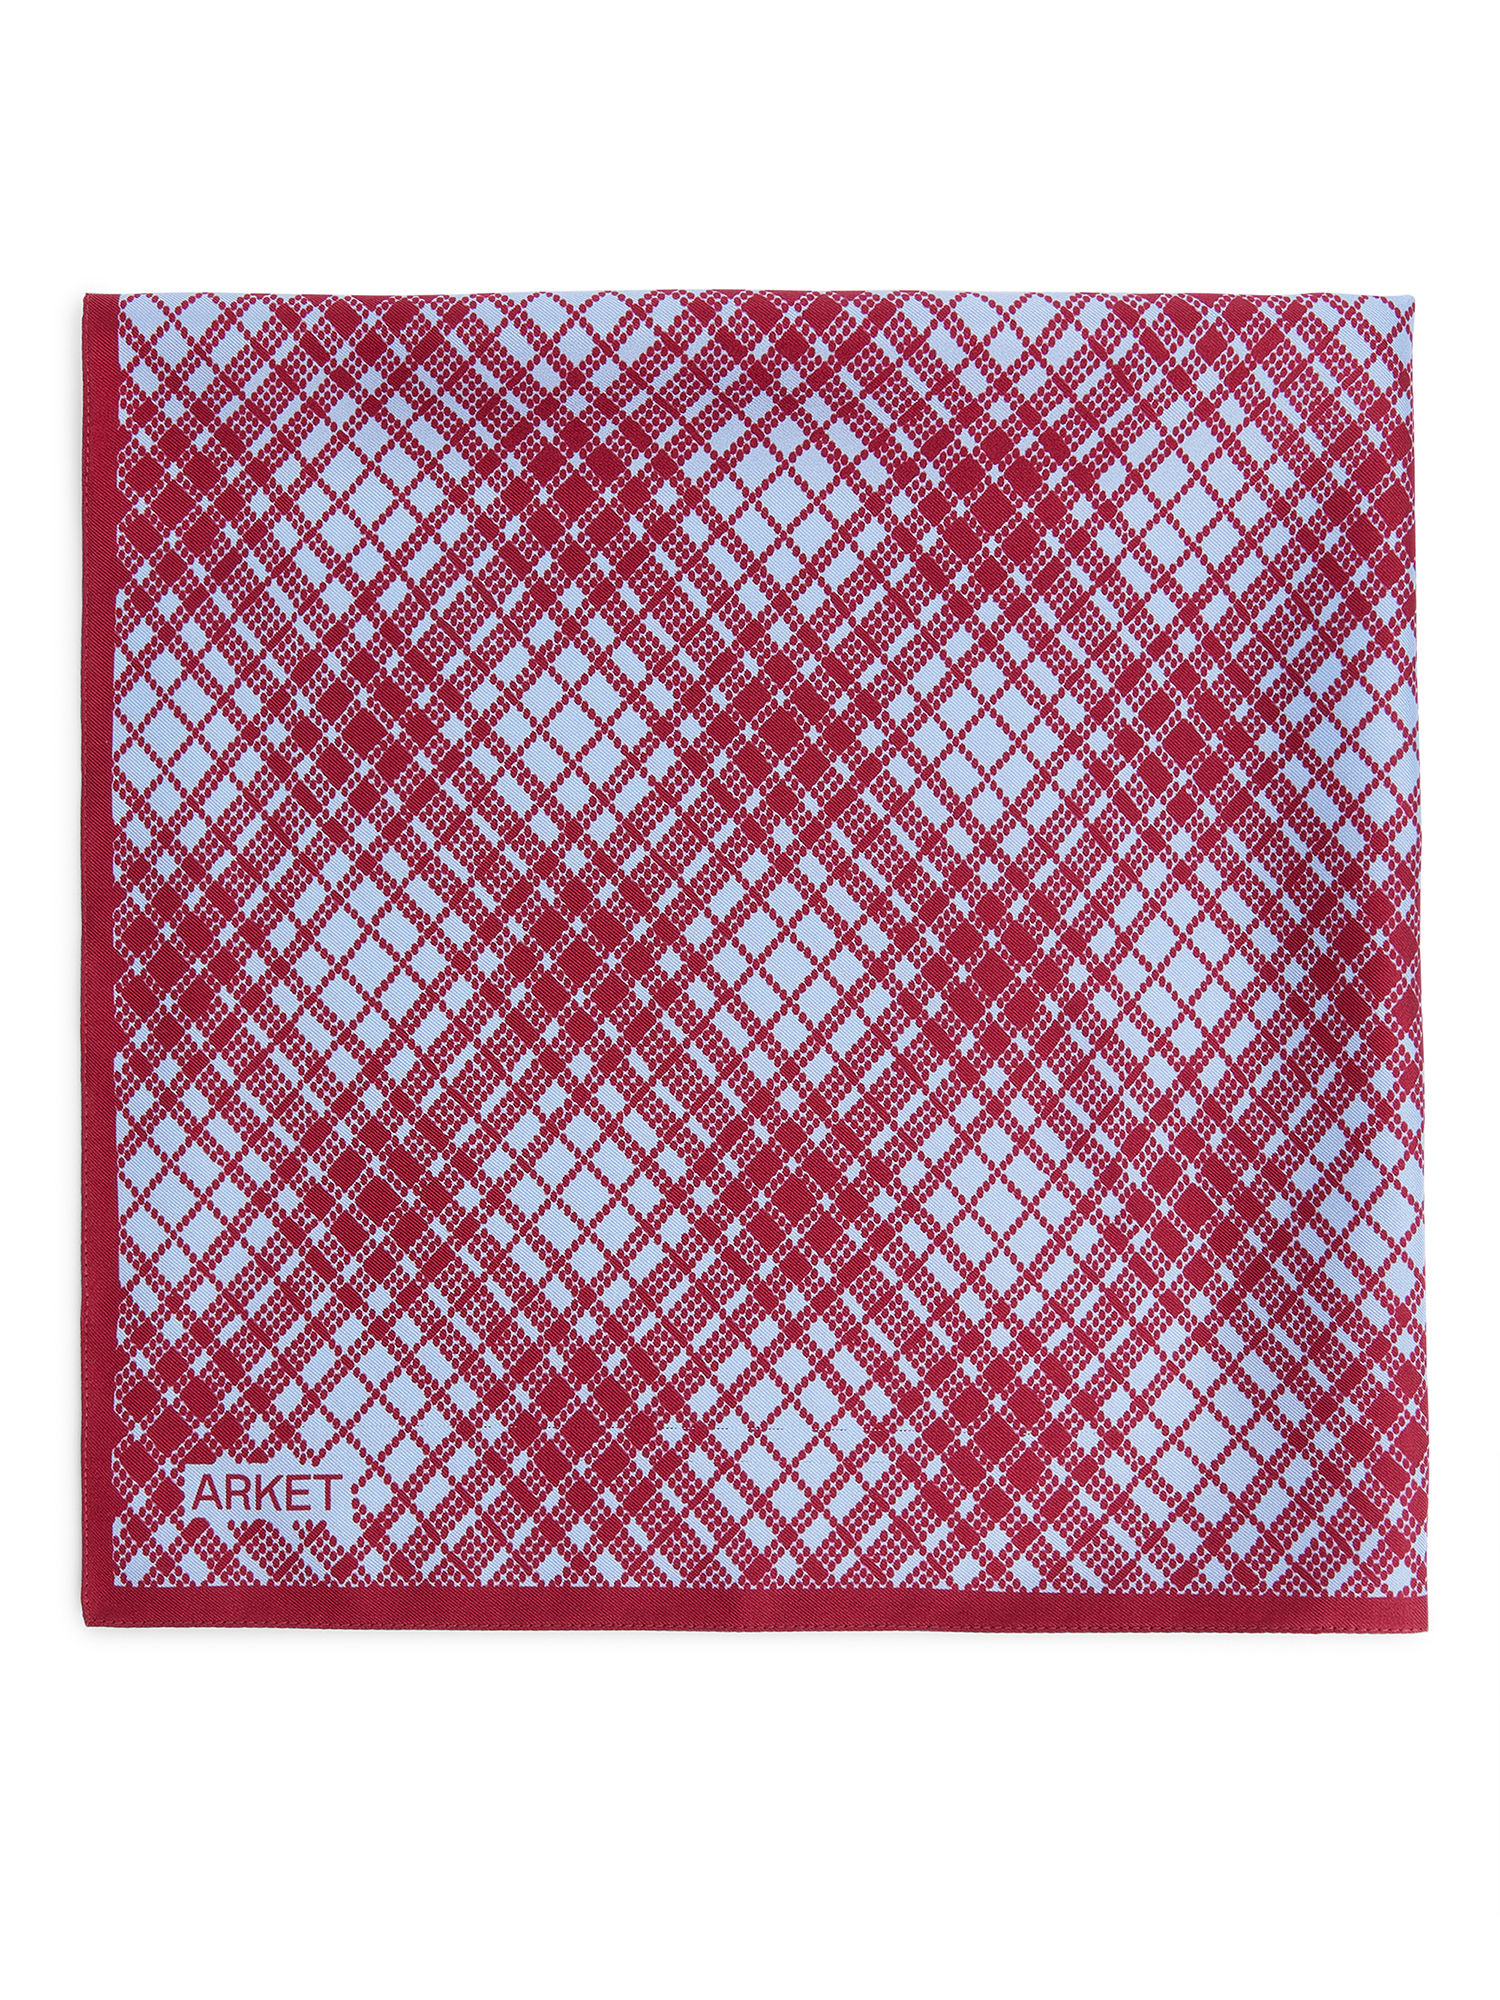 Fabric Swatch image of Arket printed silk scarf in red